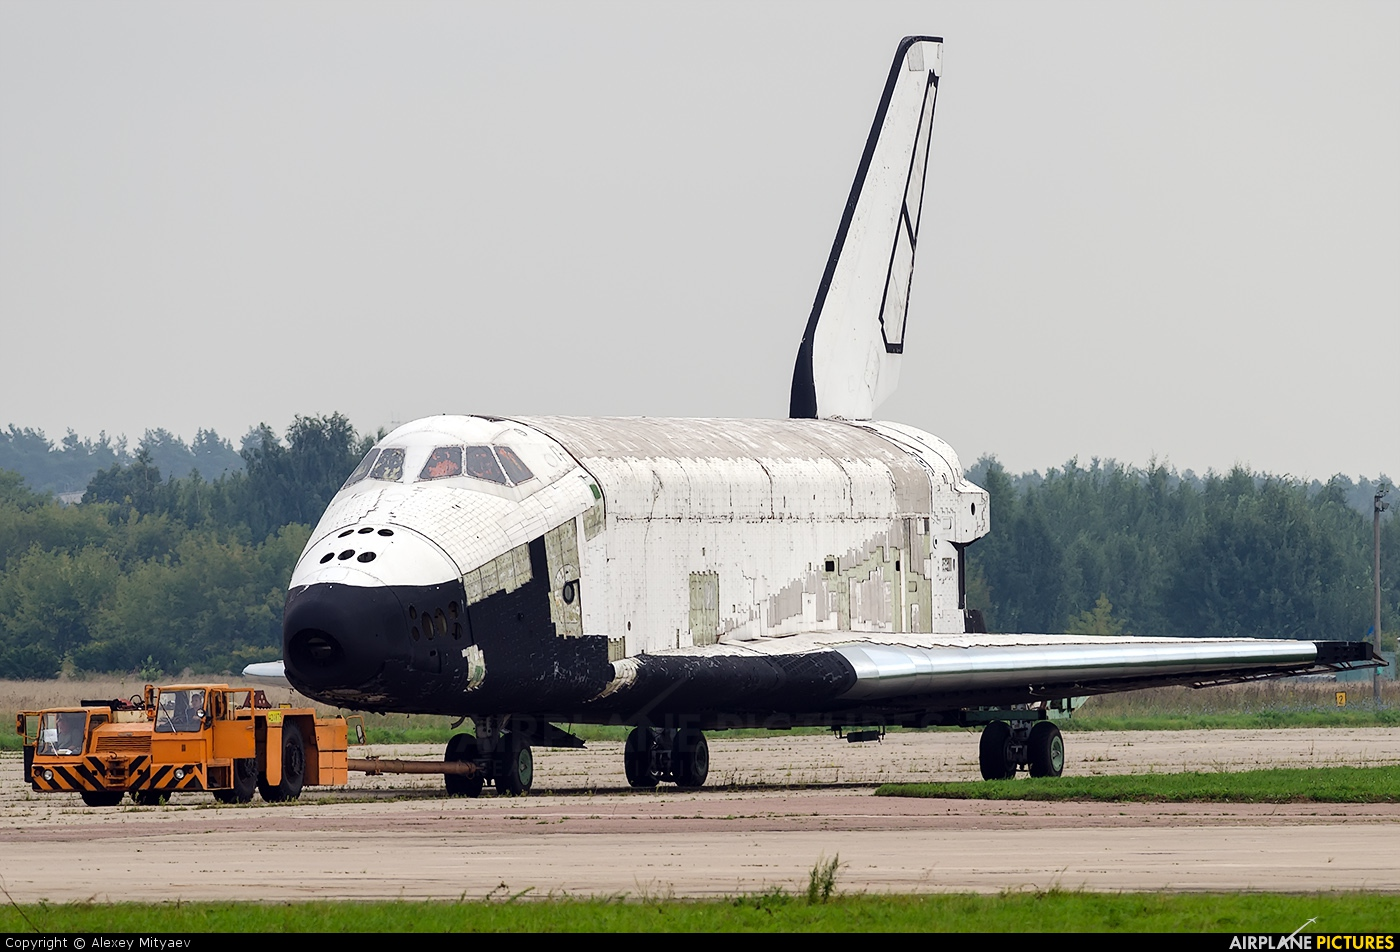 Russian Space Agency 2.01 aircraft at Ramenskoye - Zhukovsky